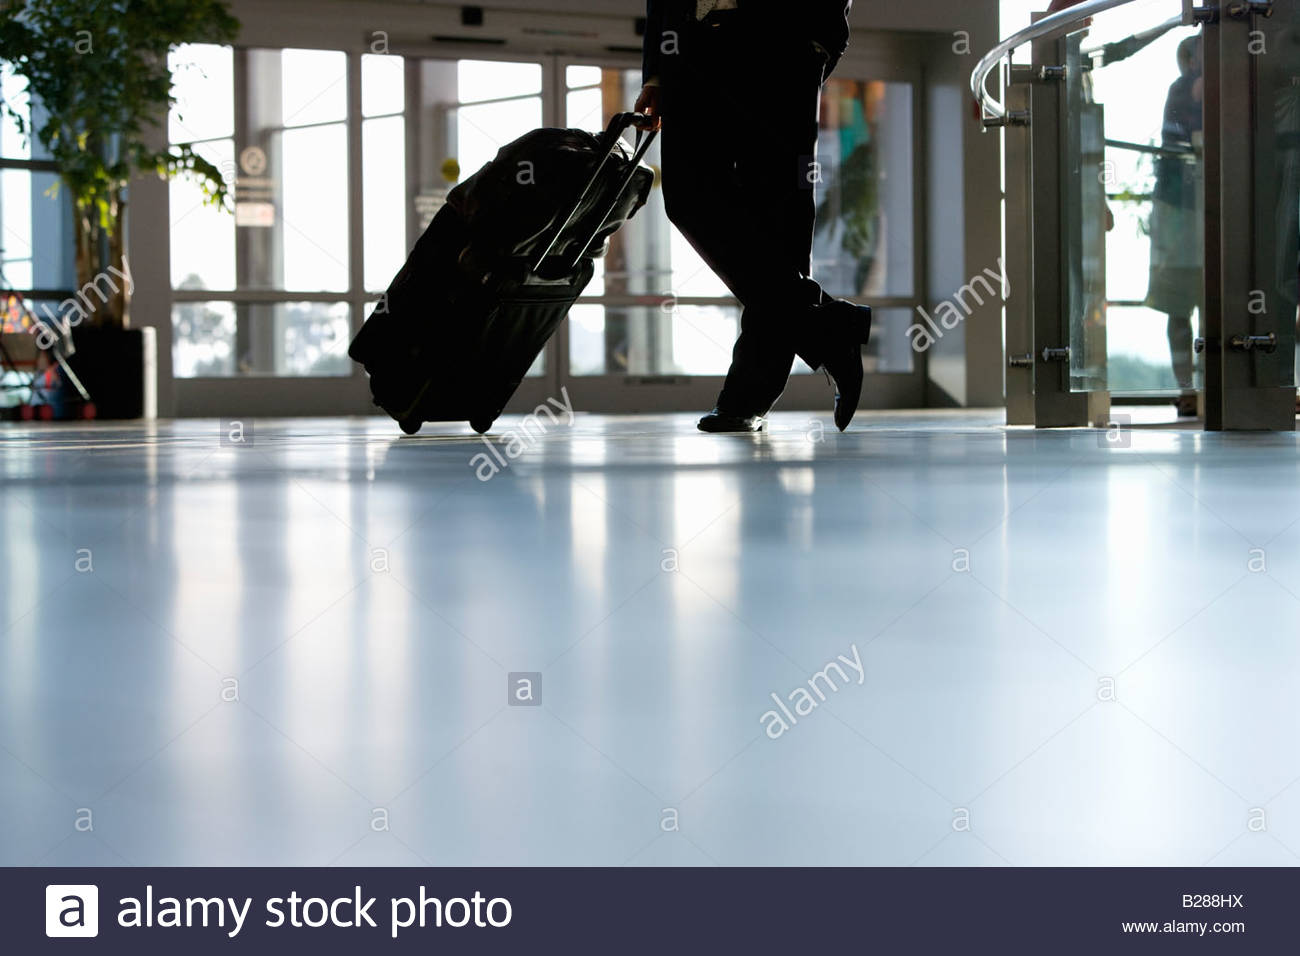 Businessman waiting with luggage in airport - Stock Image